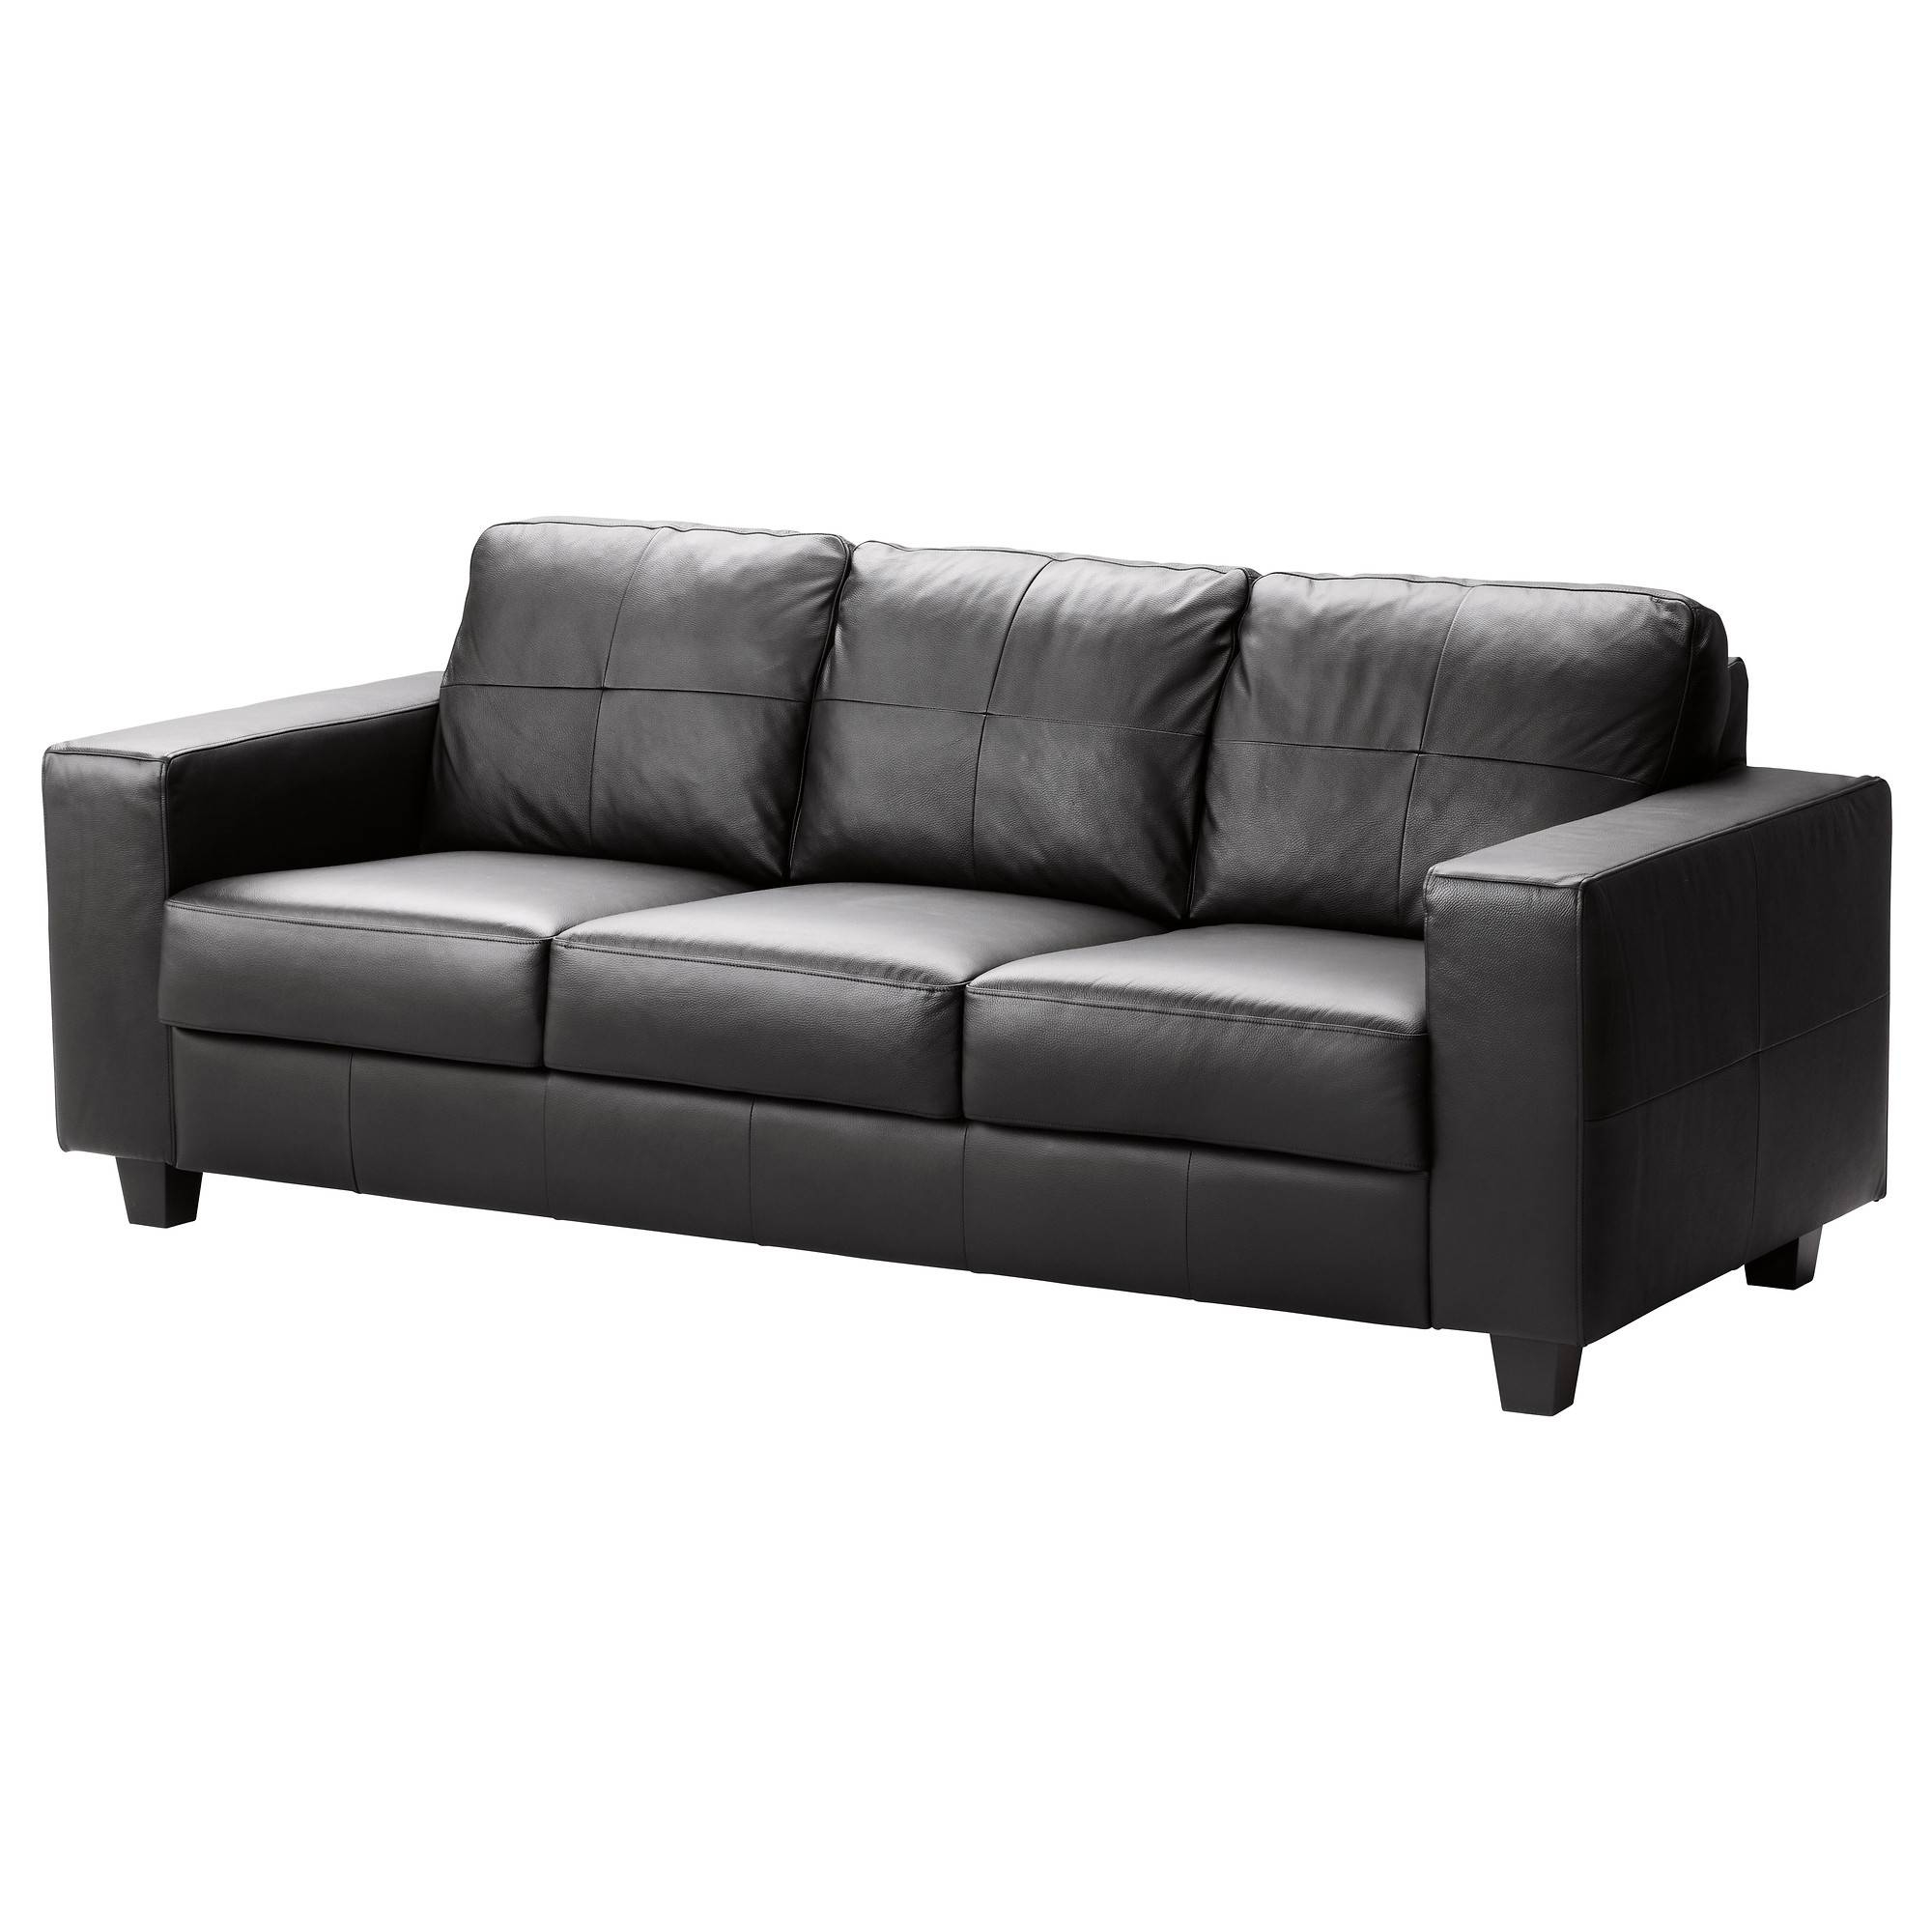 Leather/faux Leather Sofas - Ikea intended for Leather and Material Sofas (Image 17 of 30)